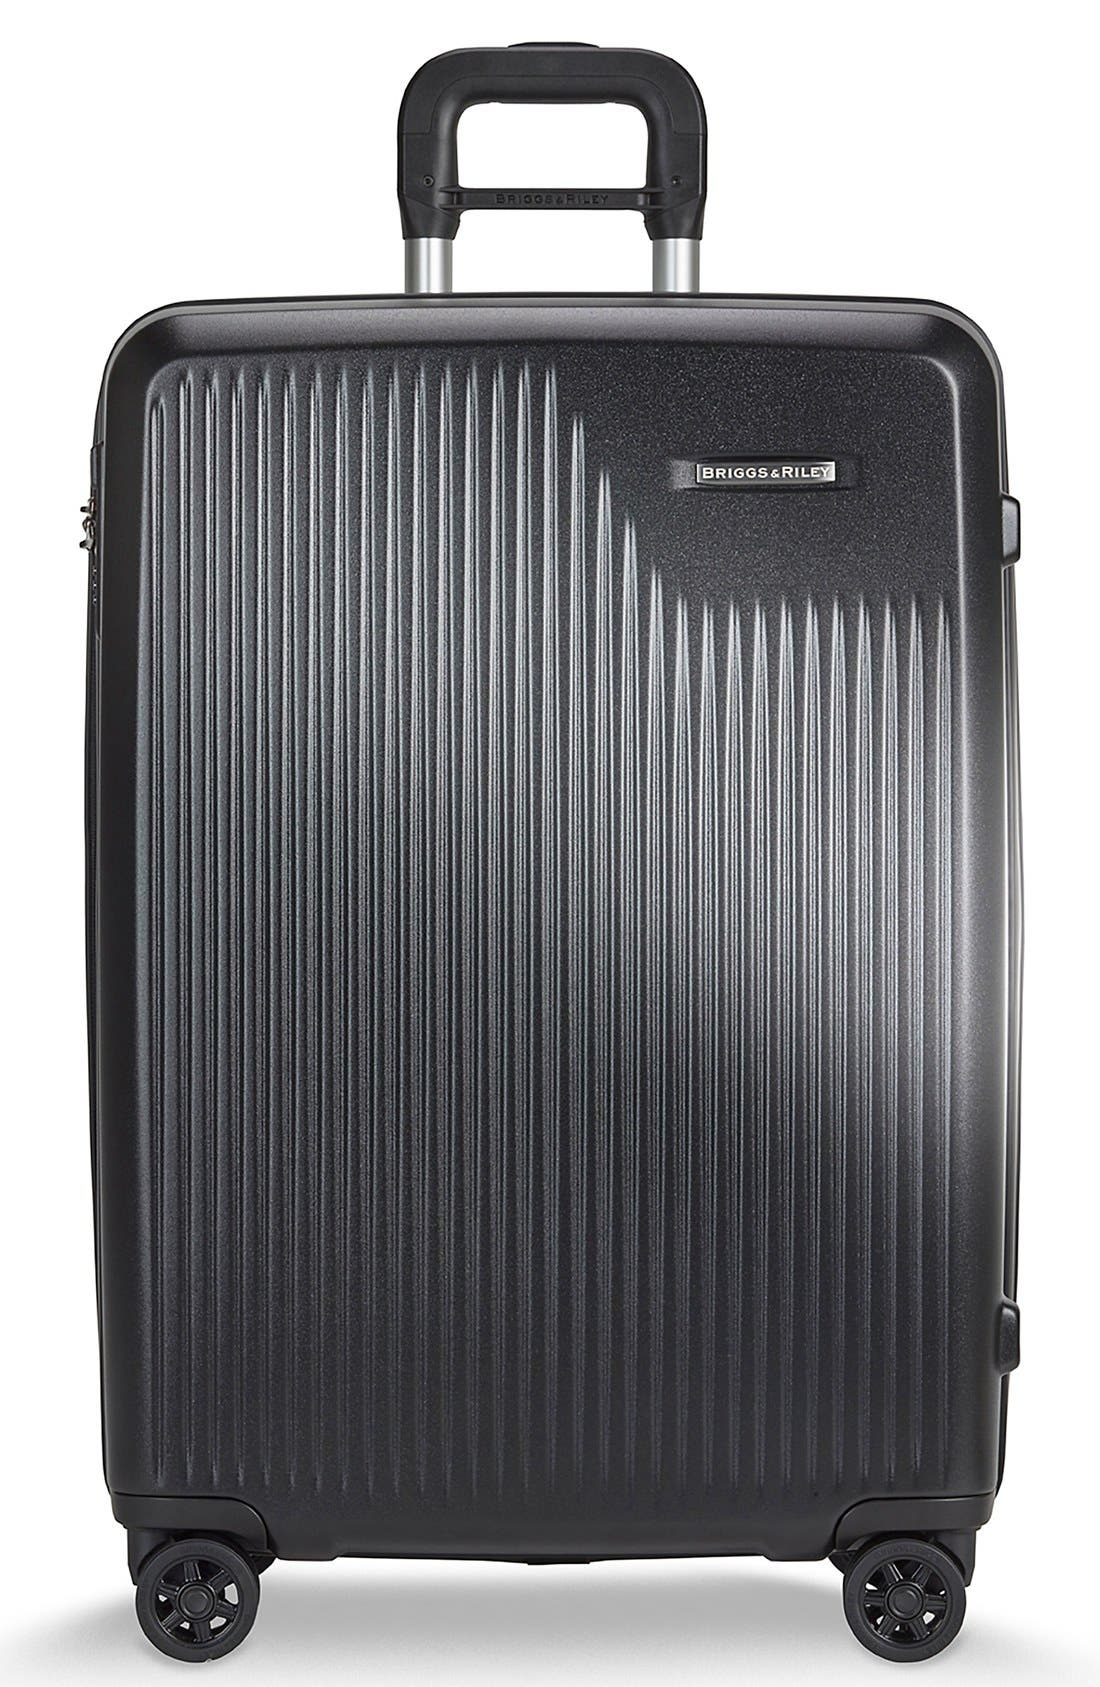 Briggs & Riley 'Sympatico' Expandable Wheeled Packing Case (27 Inch)